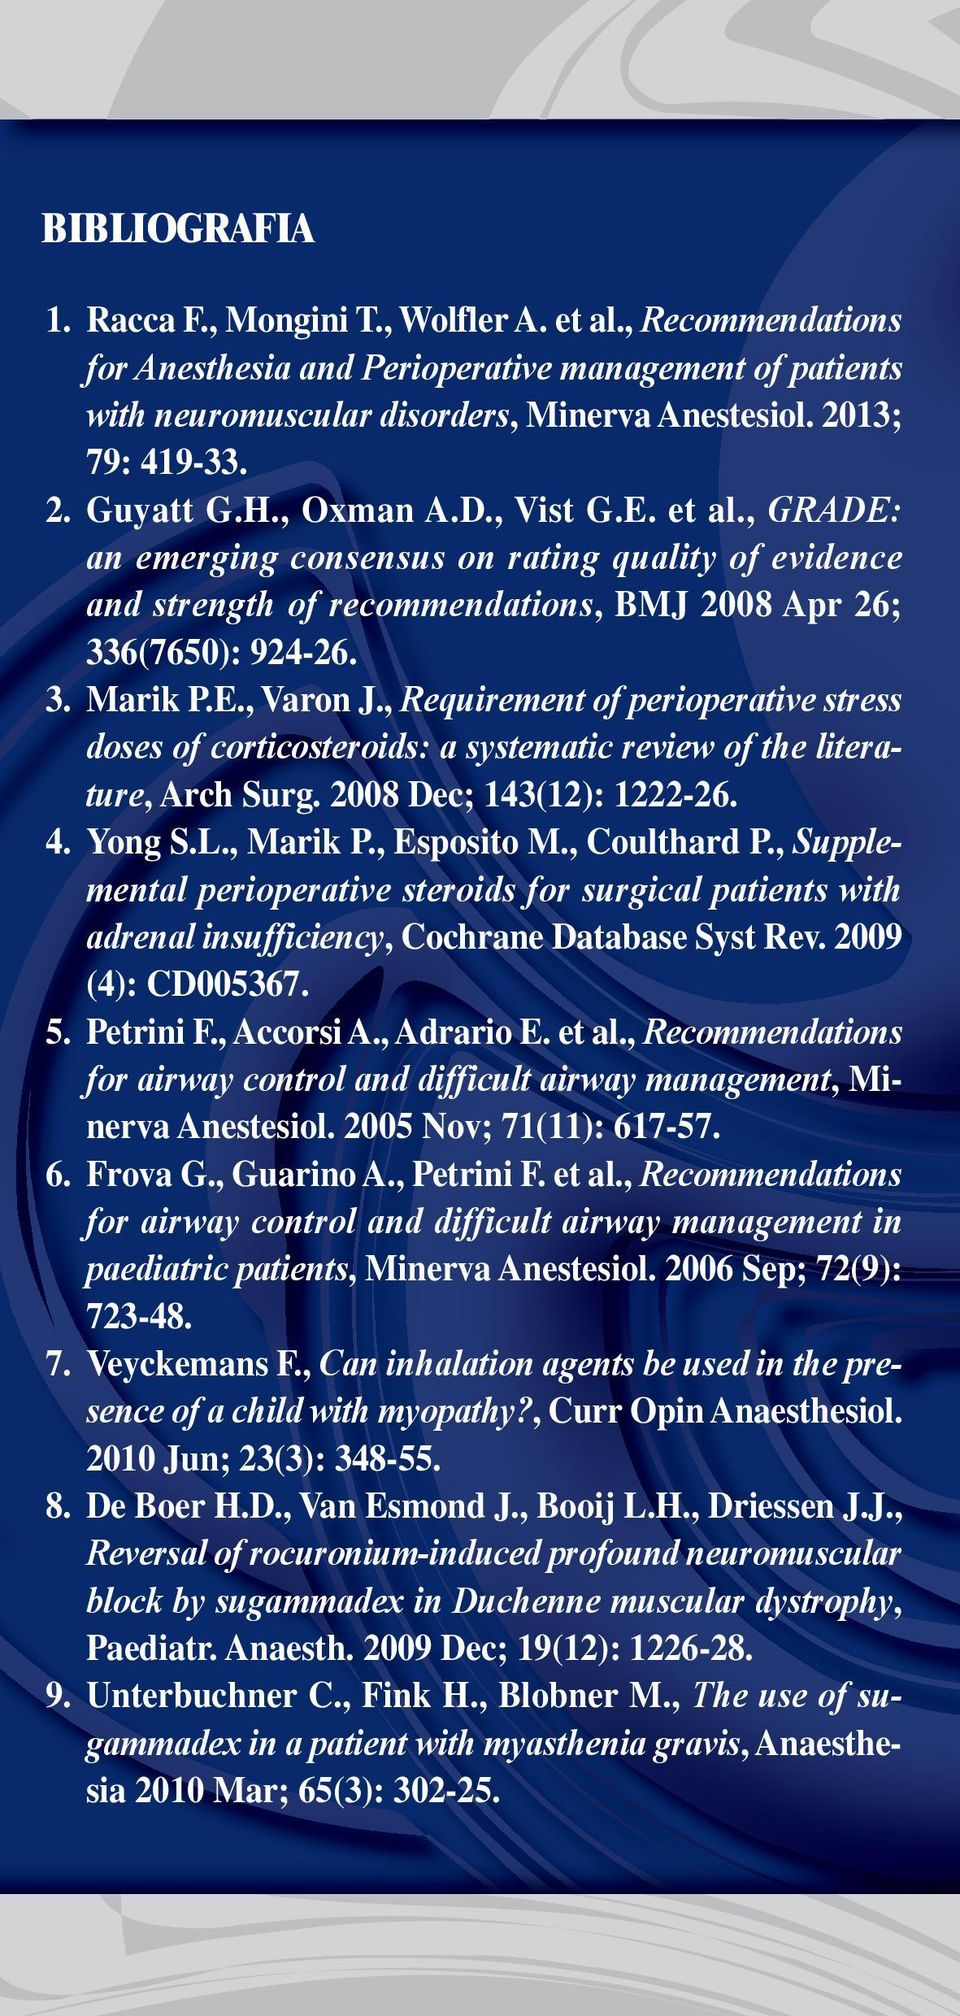 , Requirement of perioperative stress doses of corticosteroids: a systematic review of the literature, Arch Surg. 2008 Dec; 143(12): 1222-26. 4. Yong S.L., Marik P., Esposito M., Coulthard P.